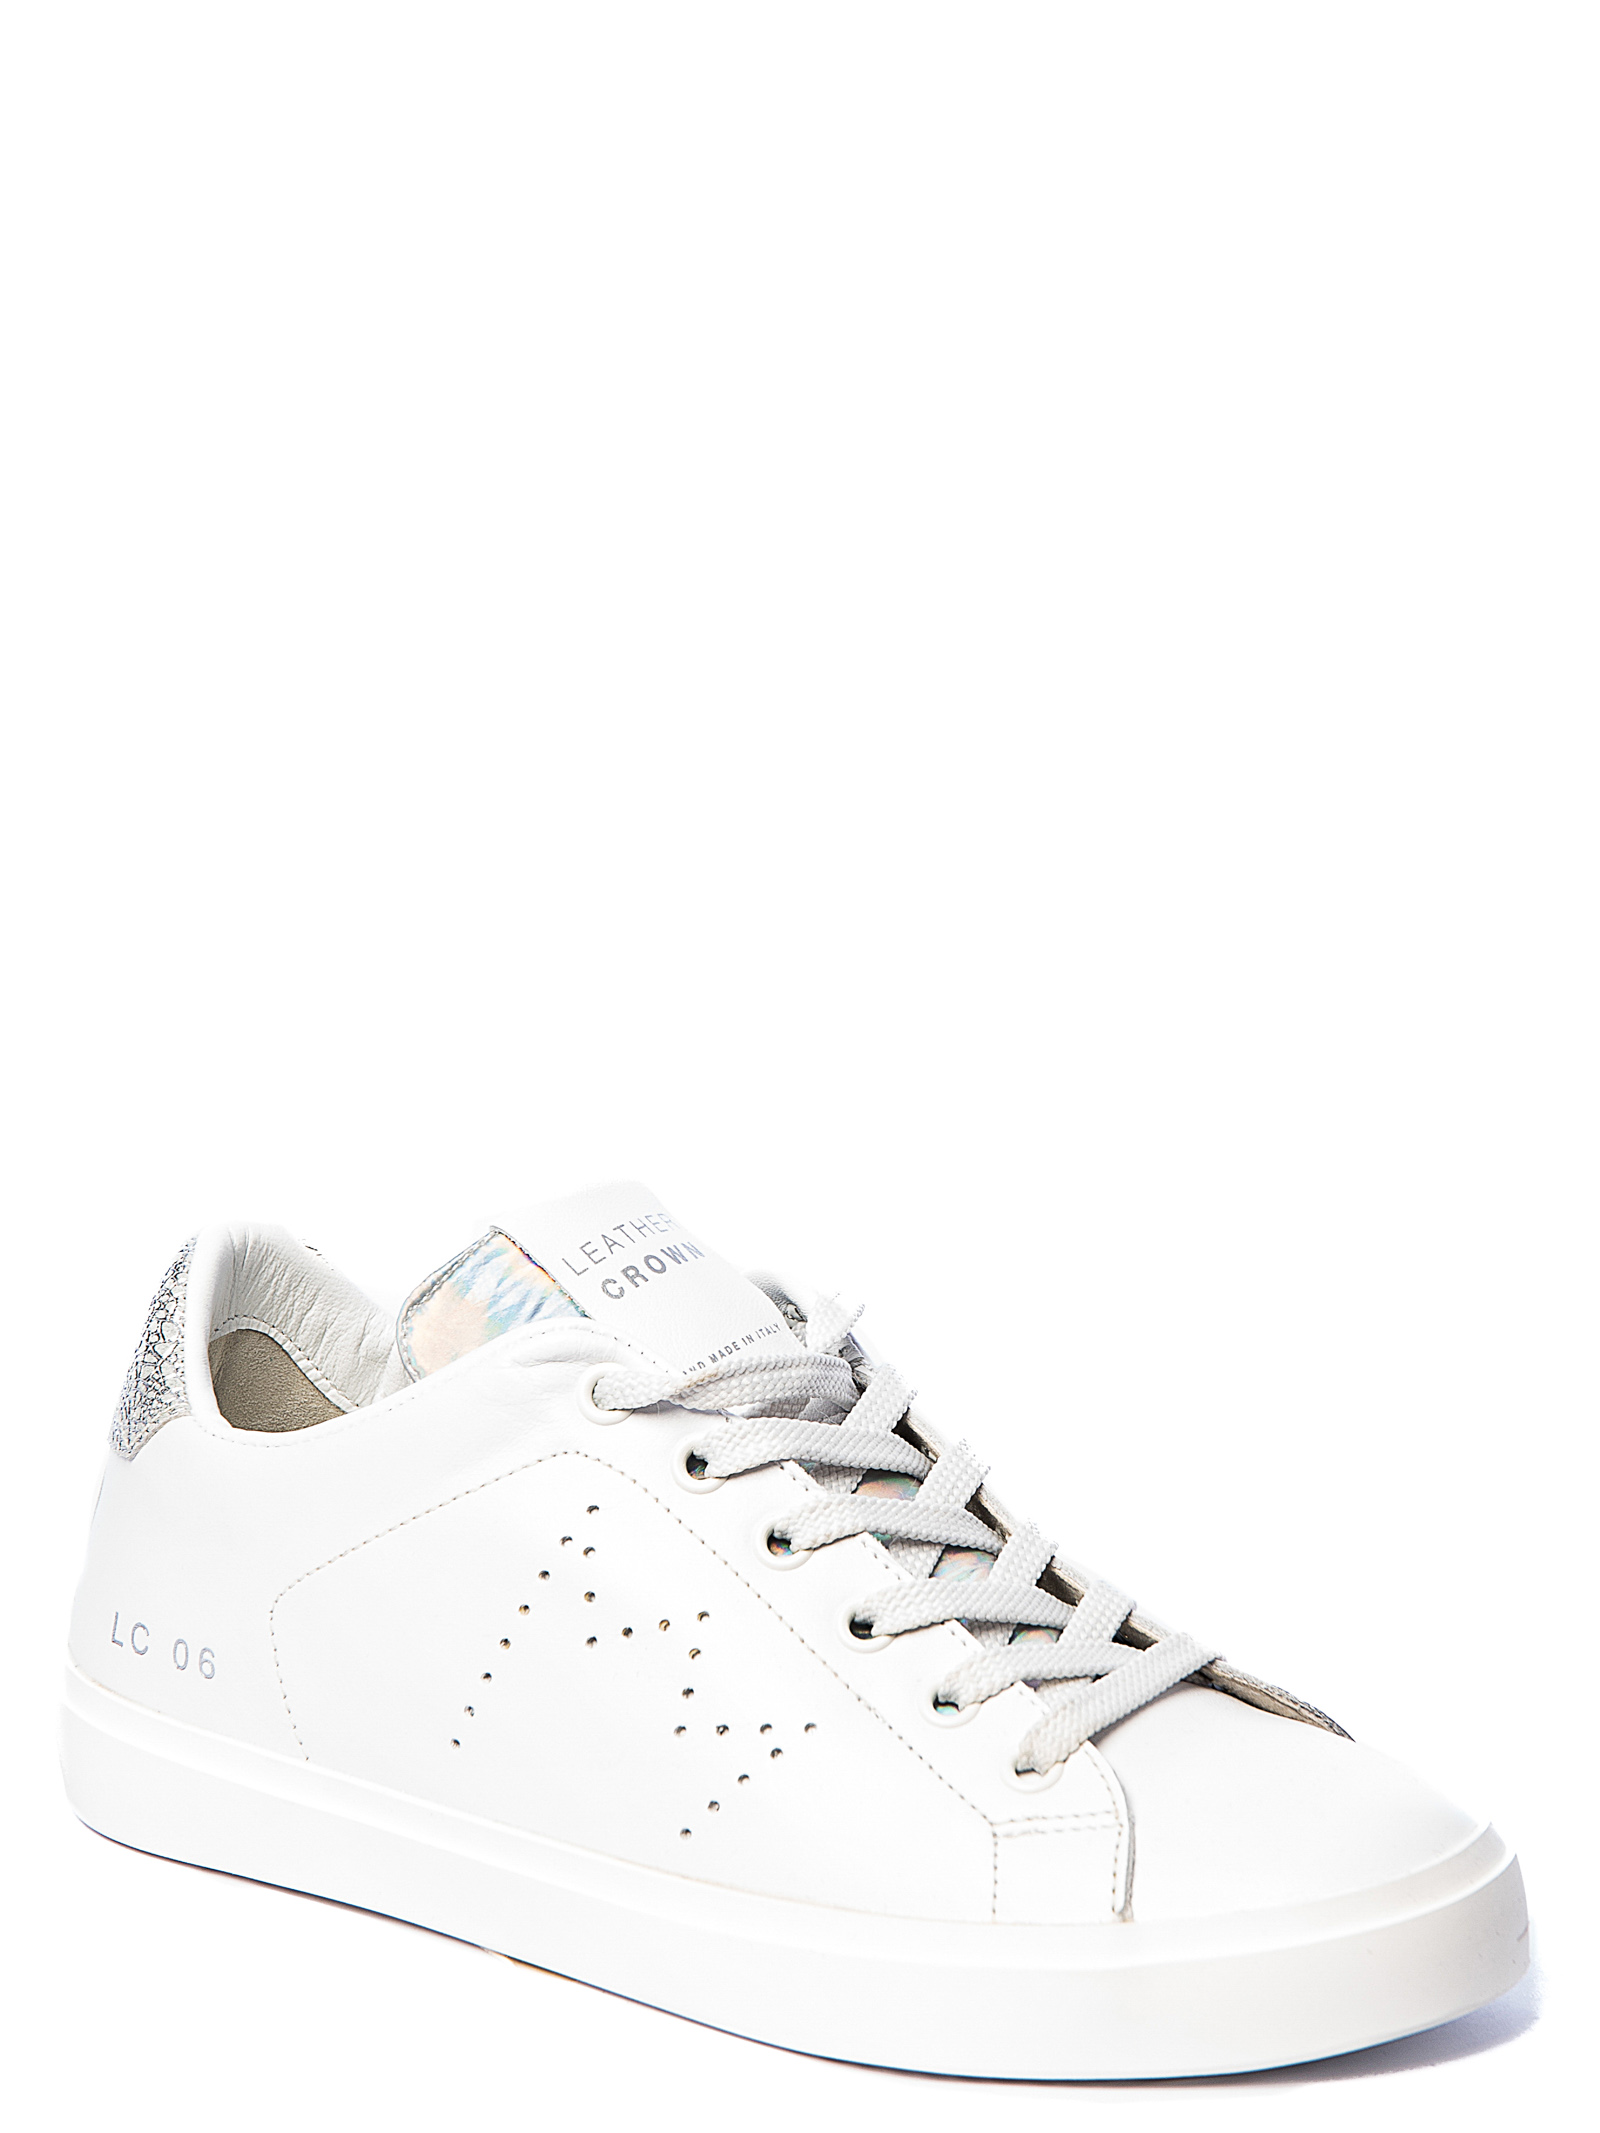 WHITE LEATHER SNEAKERS WITH PERFORATED